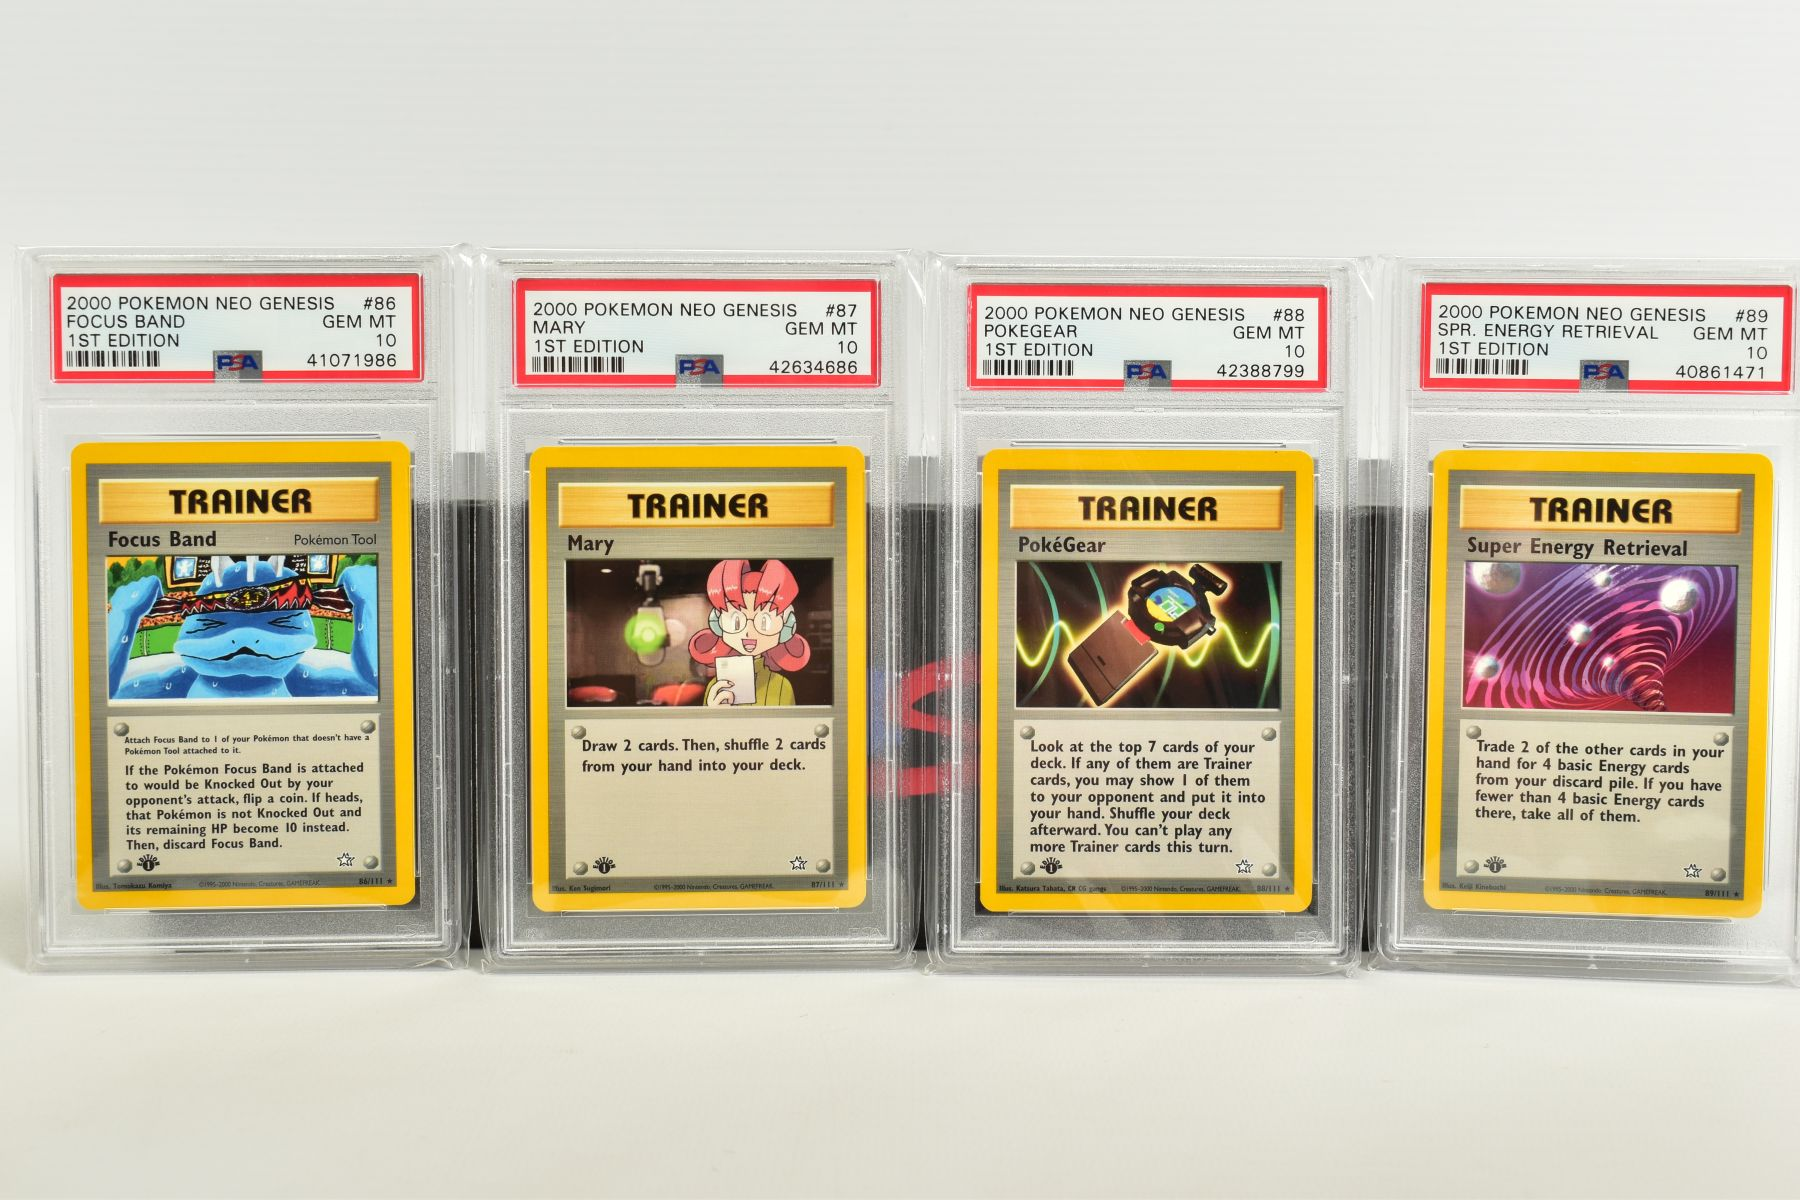 A QUANTITY OF PSA GRADED POKEMON 1ST EDITION NEO GENESIS SET CARDS, all are graded GEM MINT 10 and - Image 18 of 24